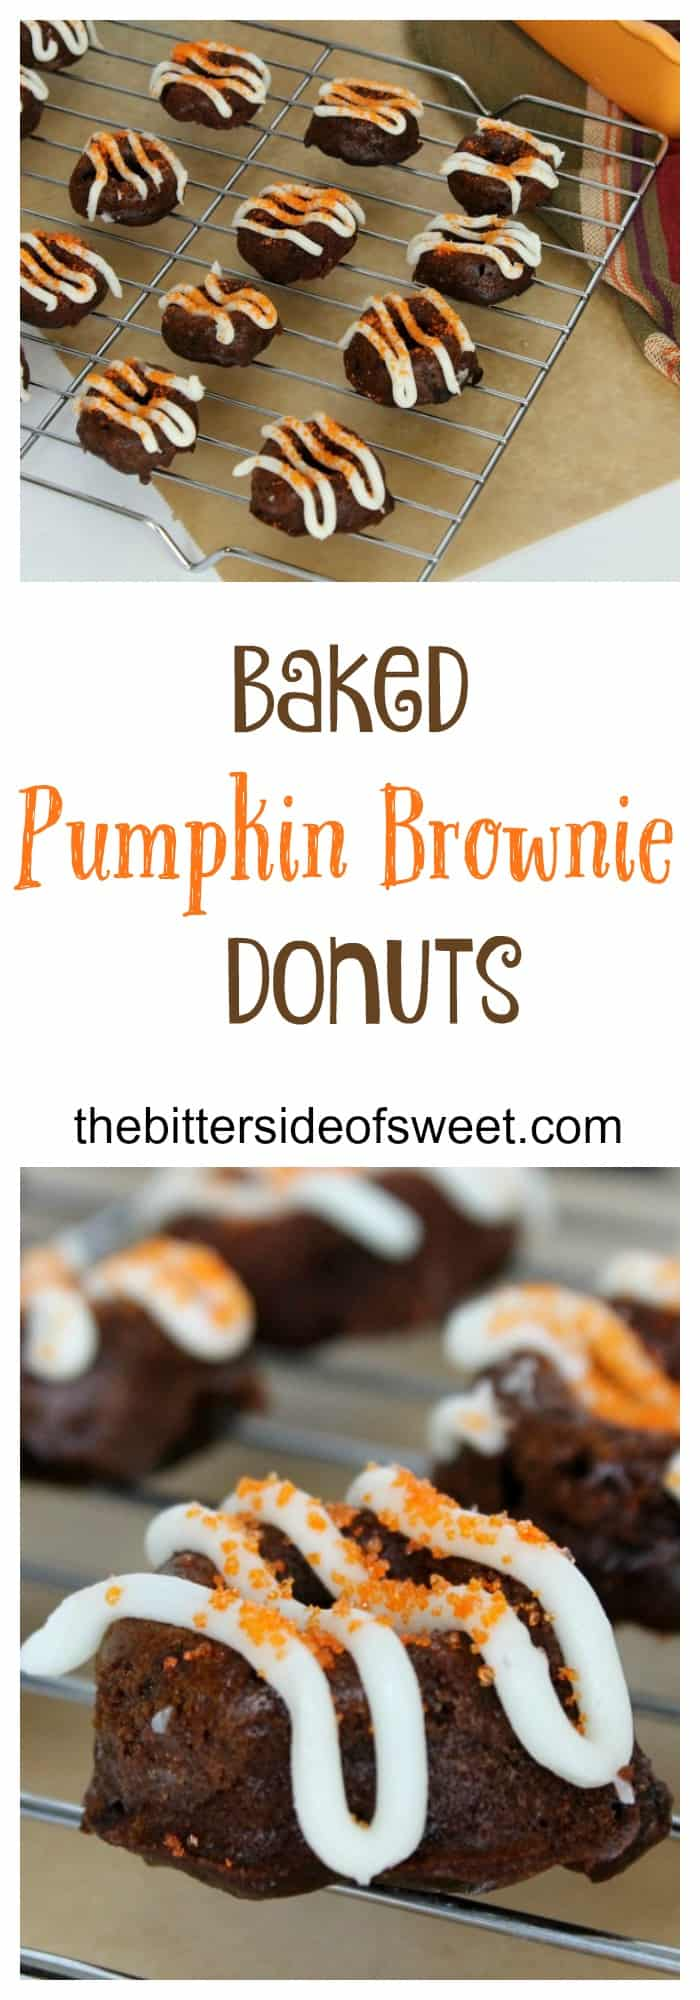 Baked Pumpkin Brownie Donuts - The Bitter Side of Sweet